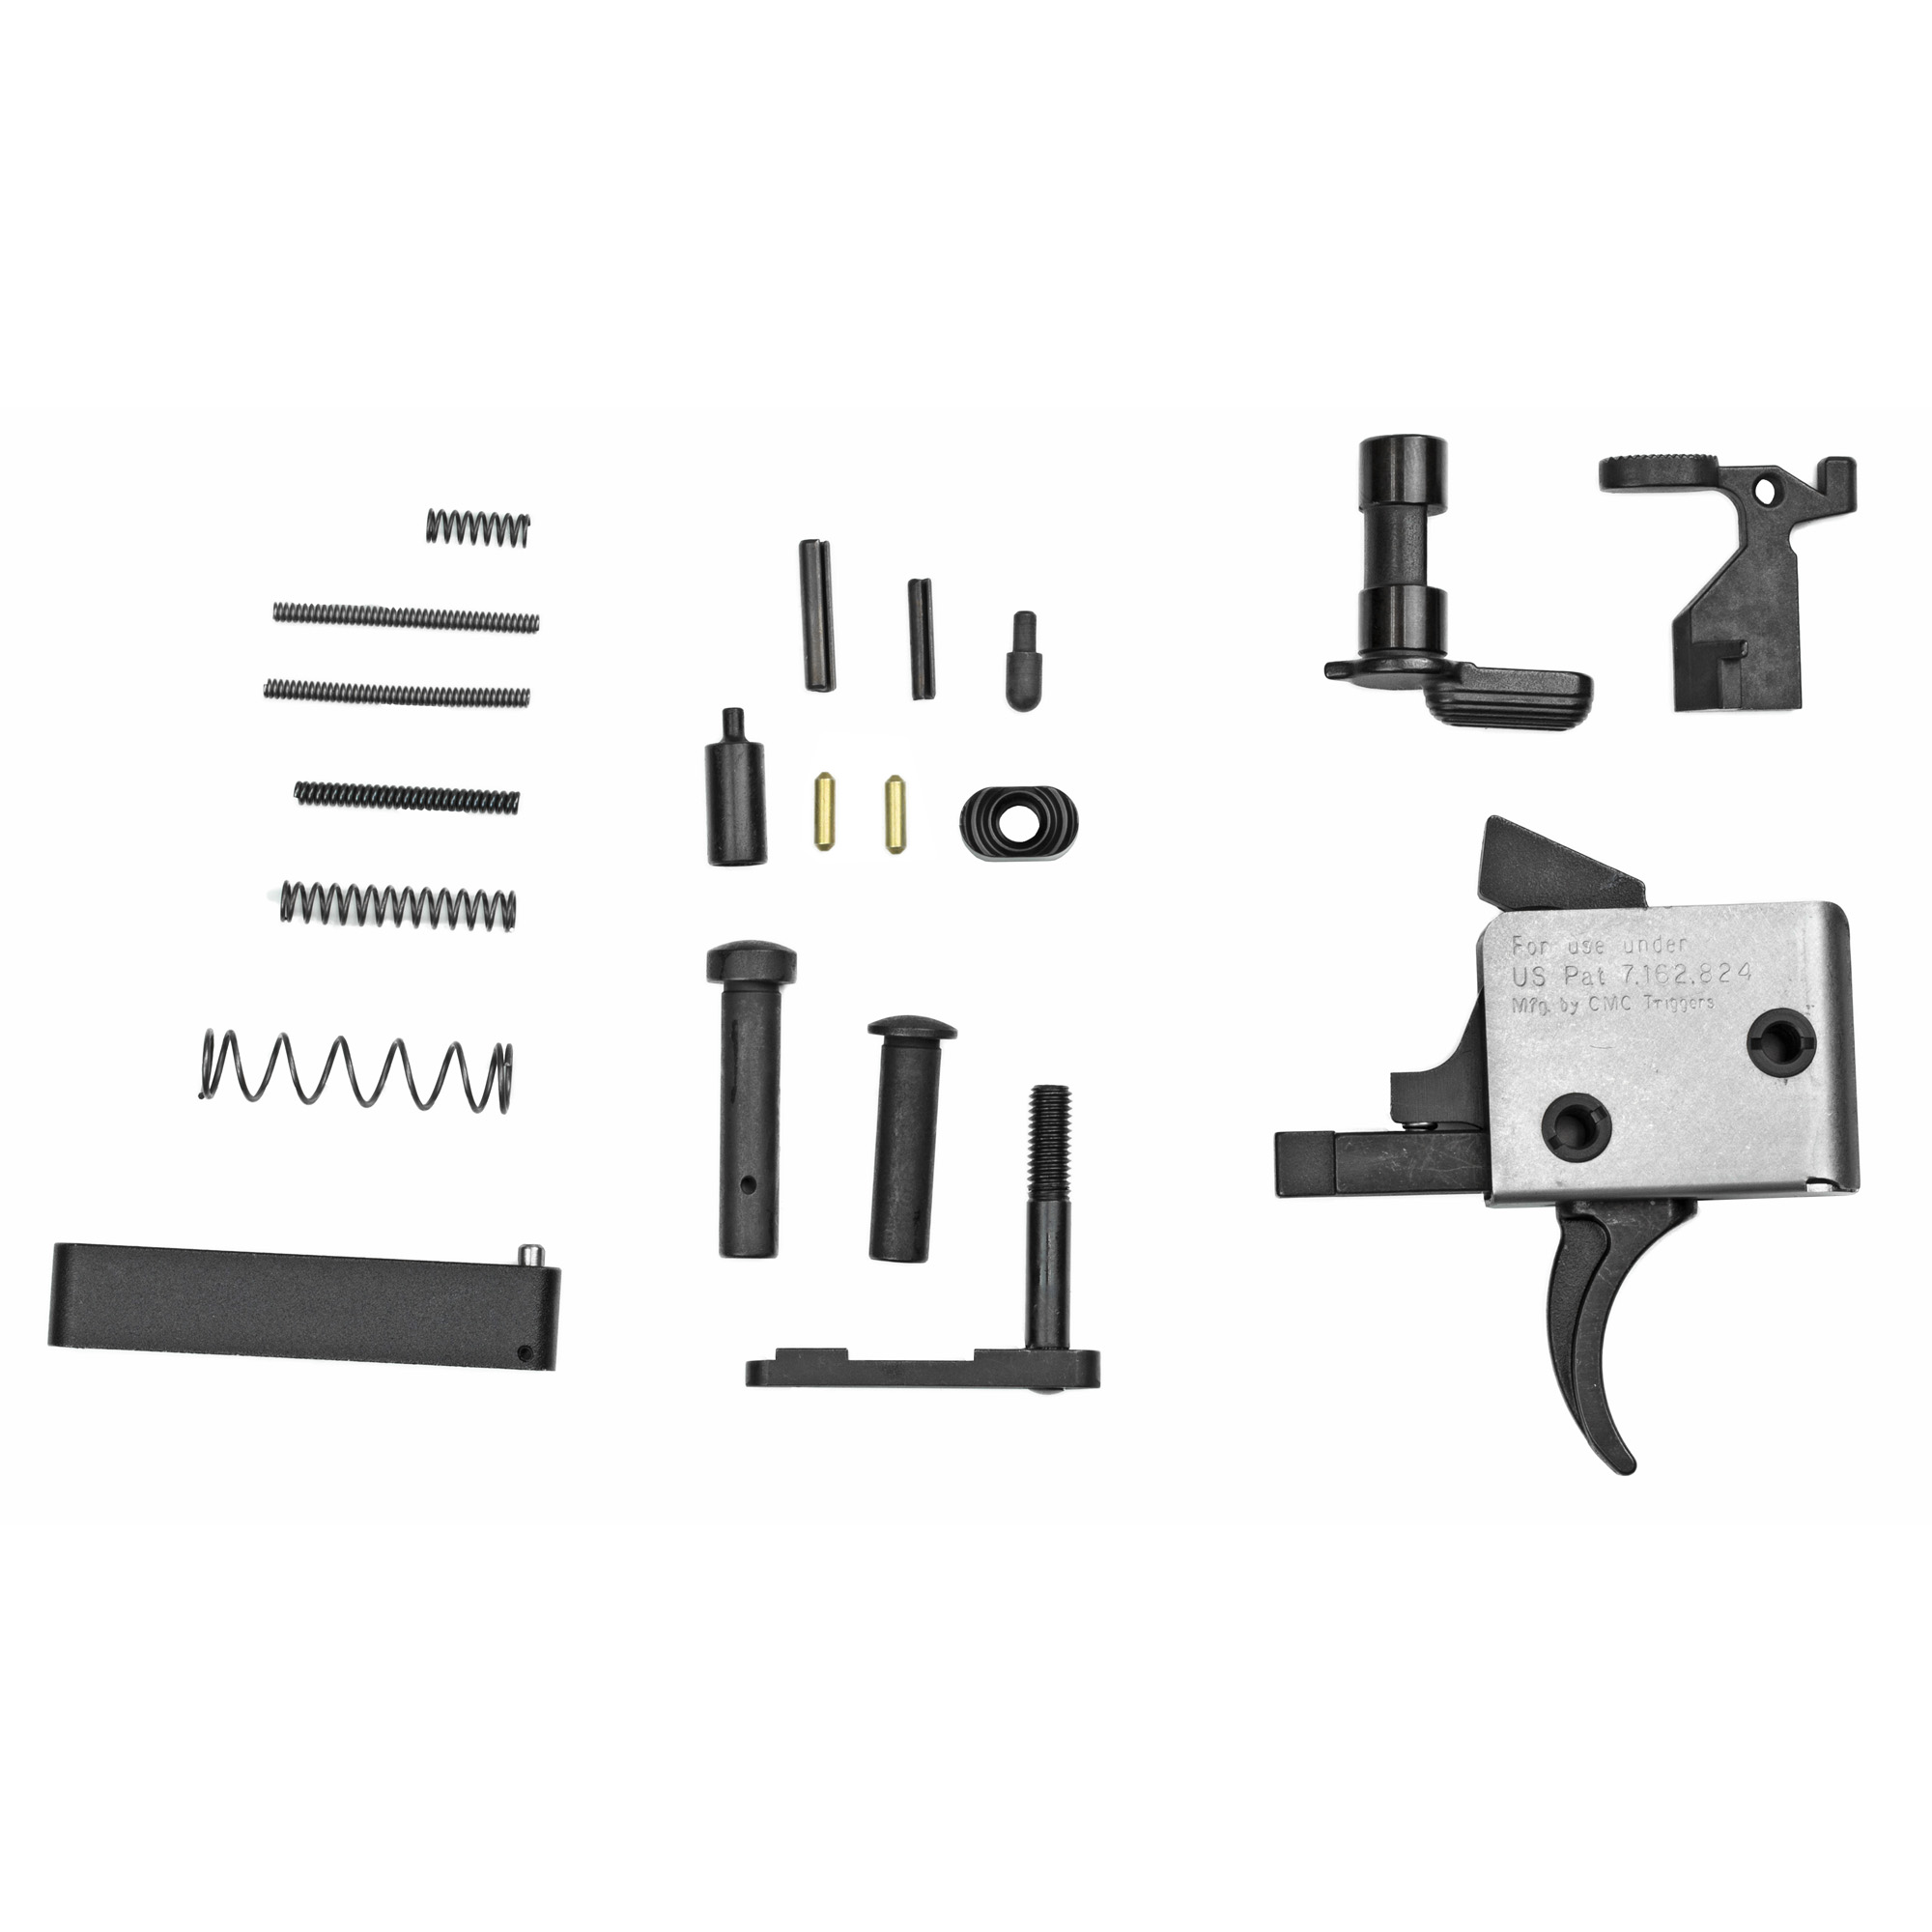 """Enhanced with a 3.5lb Single Stage Curved Trigger"""" this kit is a great addition to your AR15 build. From amateur gun builder to seasoned expert gun smith"""" this lower parts kit is for you. NOTE: Grip NOT included. Kit Contains 3.5lb Single Stage Trigger 1.Bolt Catch 2. Bolt Catch Plunger 3. Bolt Catch Spring 4. Bolt Catch Roll Pin 5. Mag Release 6. Mag Release Button 7. Mag Release Spring 8. Buffer Retainer Spring 9. Safety 10. Buffer Retainer 11. Safety Detent Spring 12. Safety Detent 13. Trigger Guard 14. Trigger Guard Roll Pin 15. Takedown Detent Springs 16. Takedown Detents 17. Takedown Pins. All parts meet or exceed MIL SPEC"""